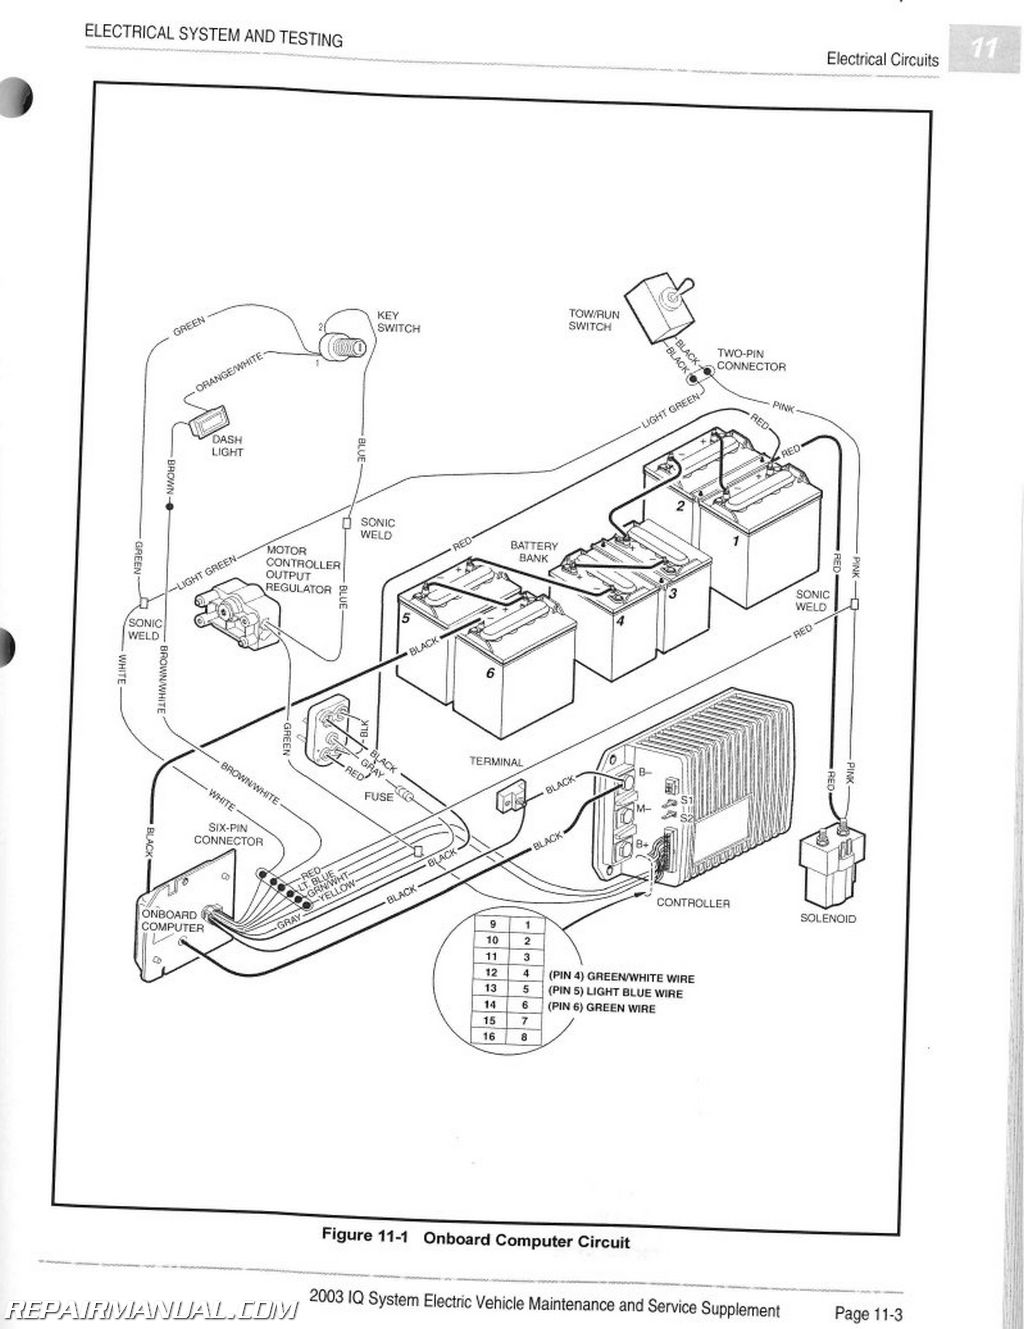 1991 club car wiring diagram private sharing about wiring diagram u2022 rh caraccessoriesandsoftware co uk